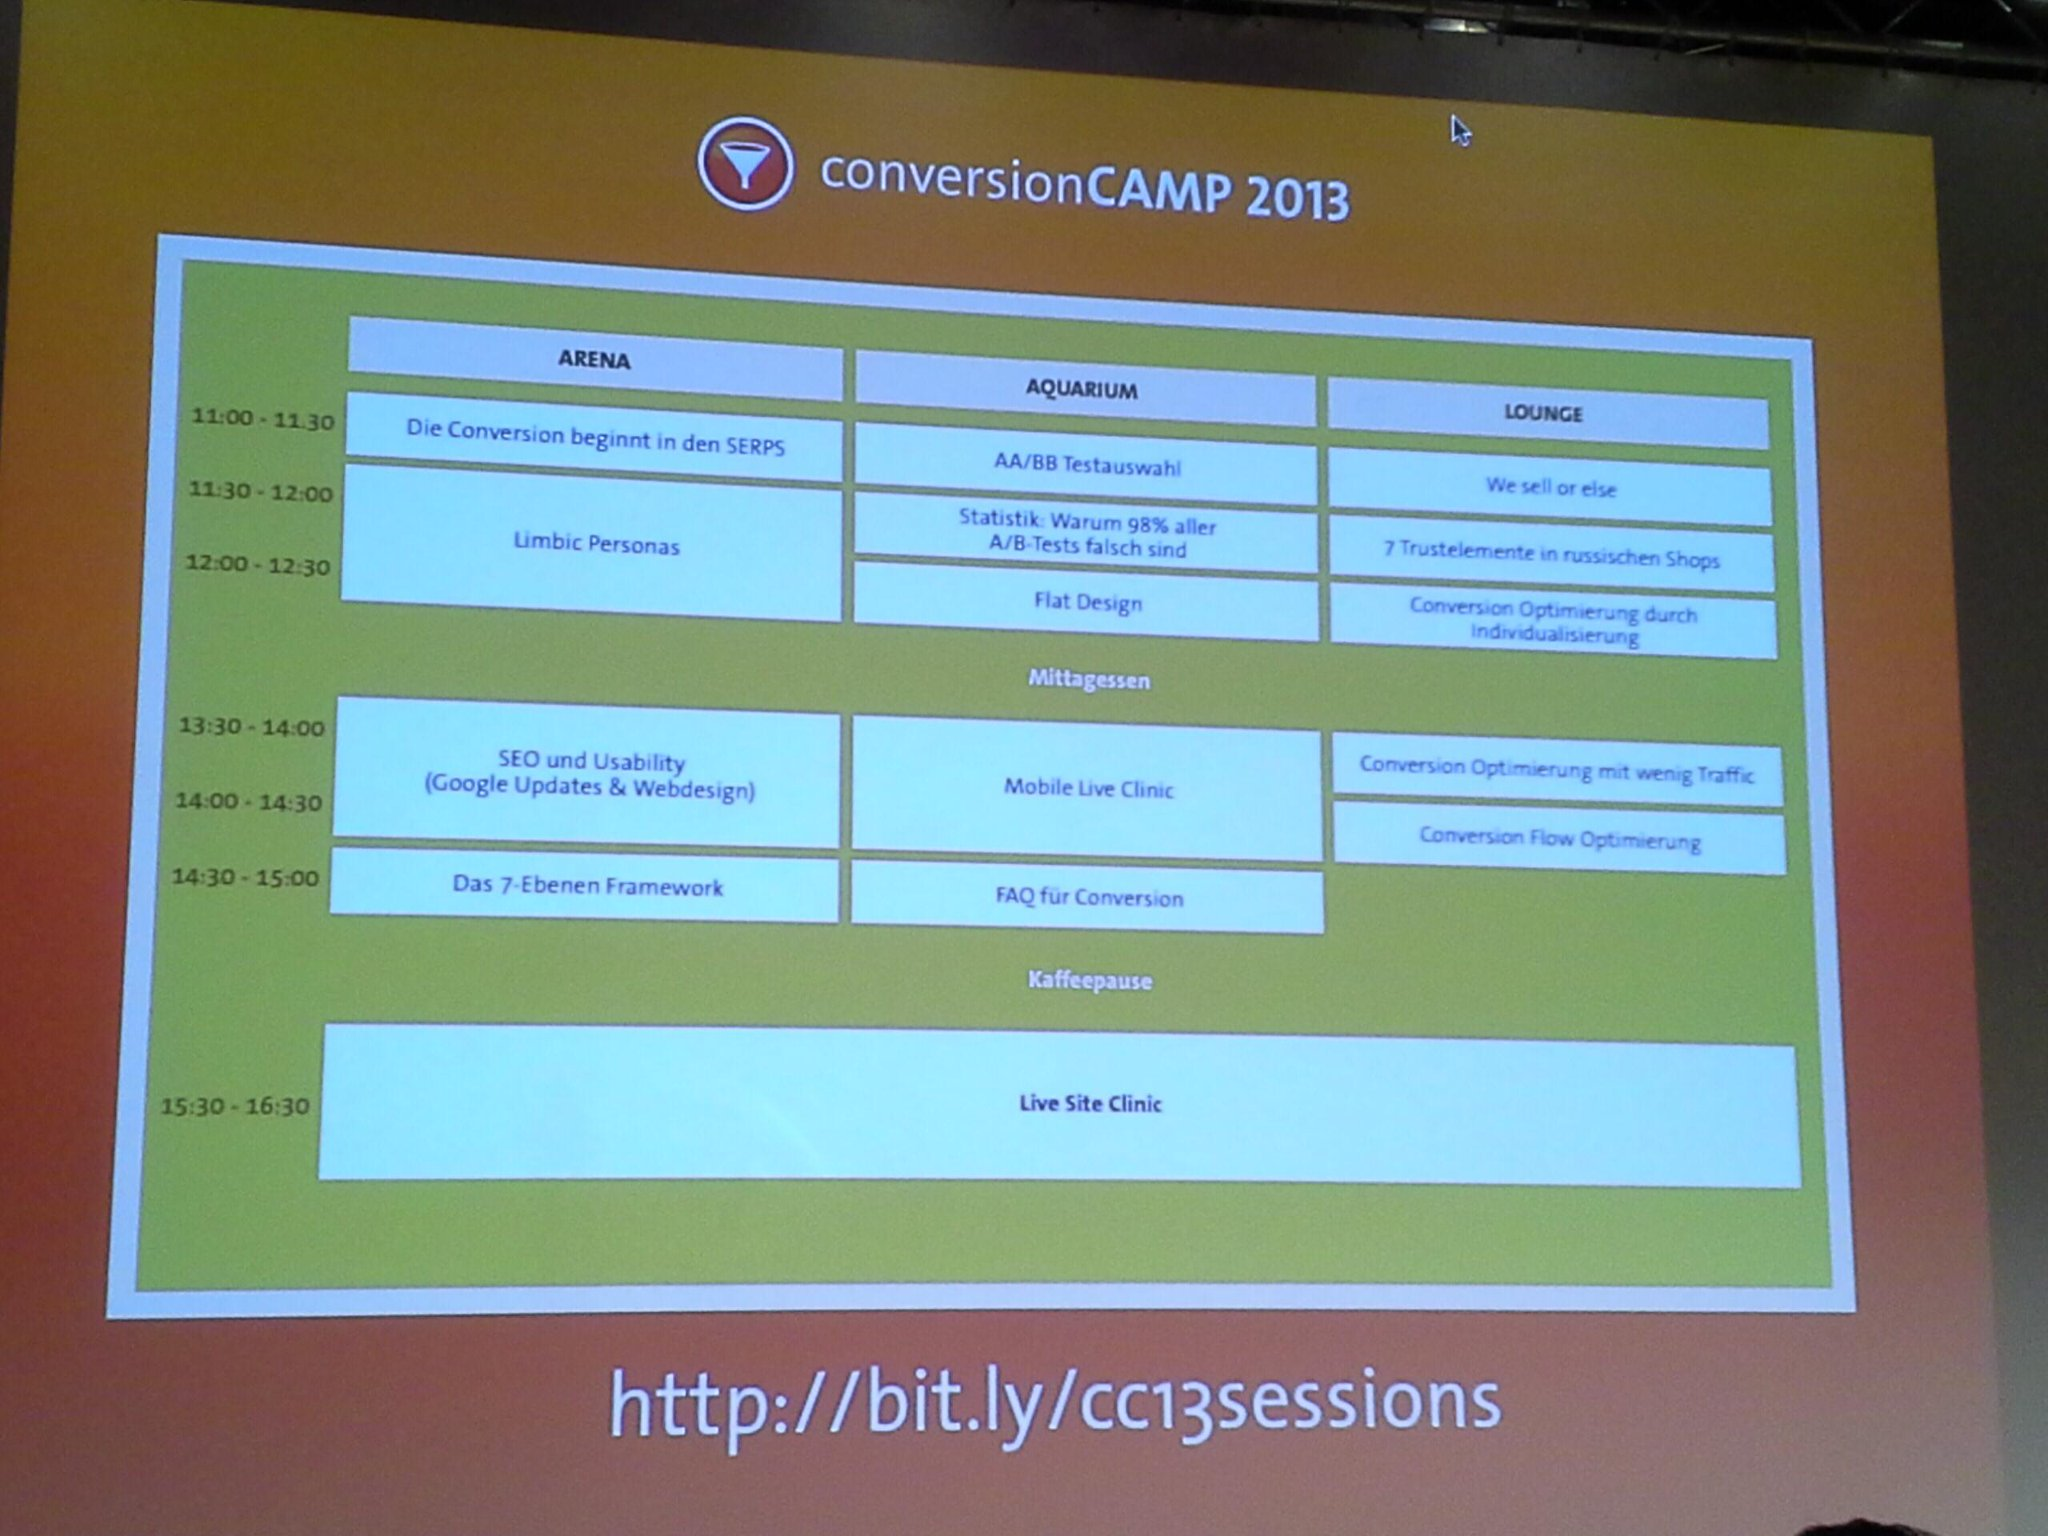 Conversion Camp Agenda